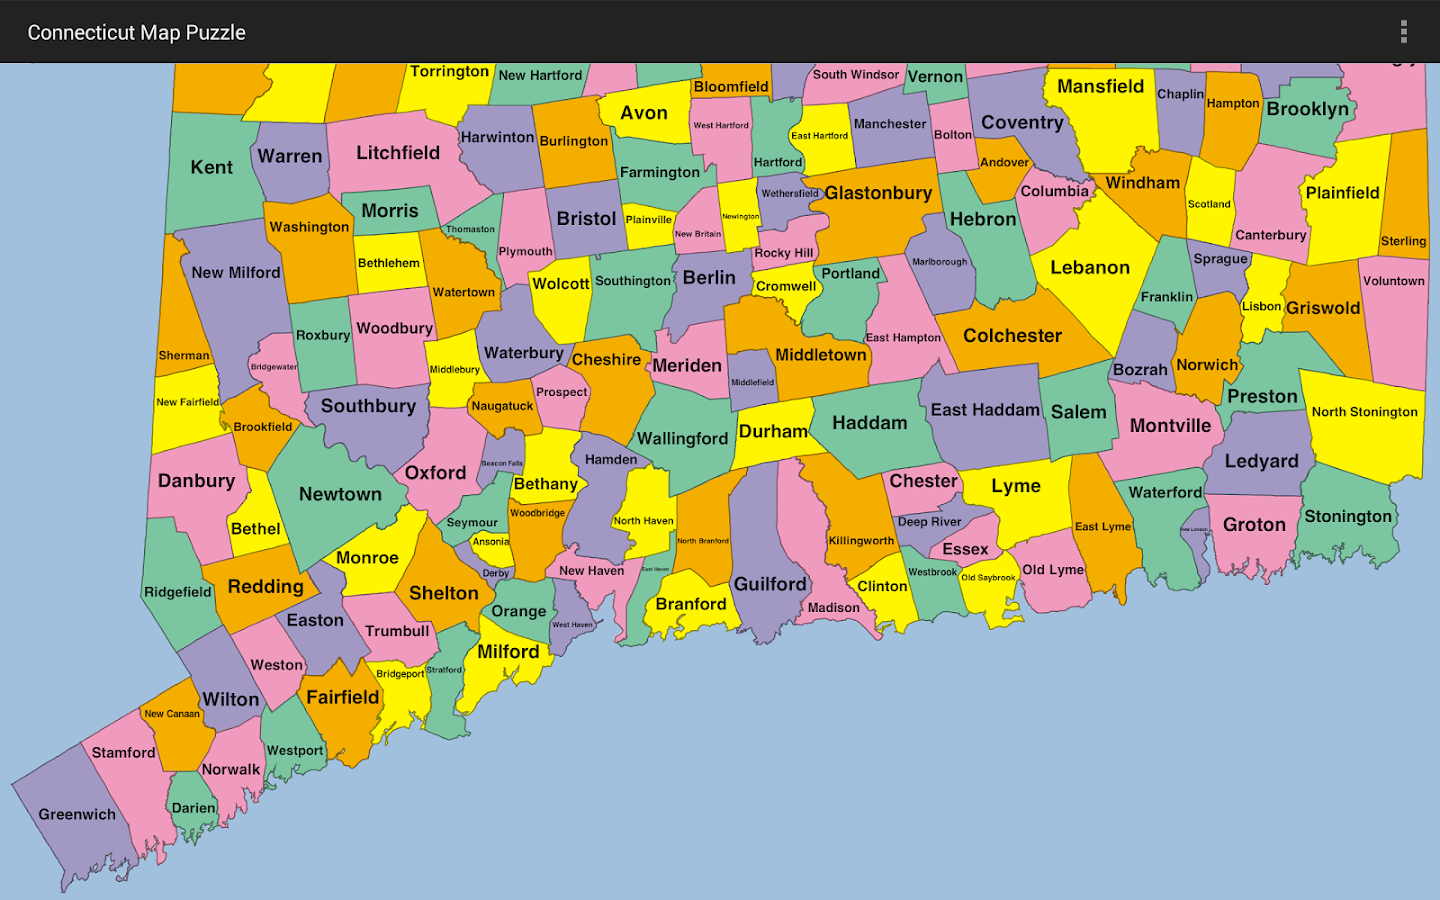 Connecticut Map Puzzle Android Apps On Google Play - Chicago map puzzle